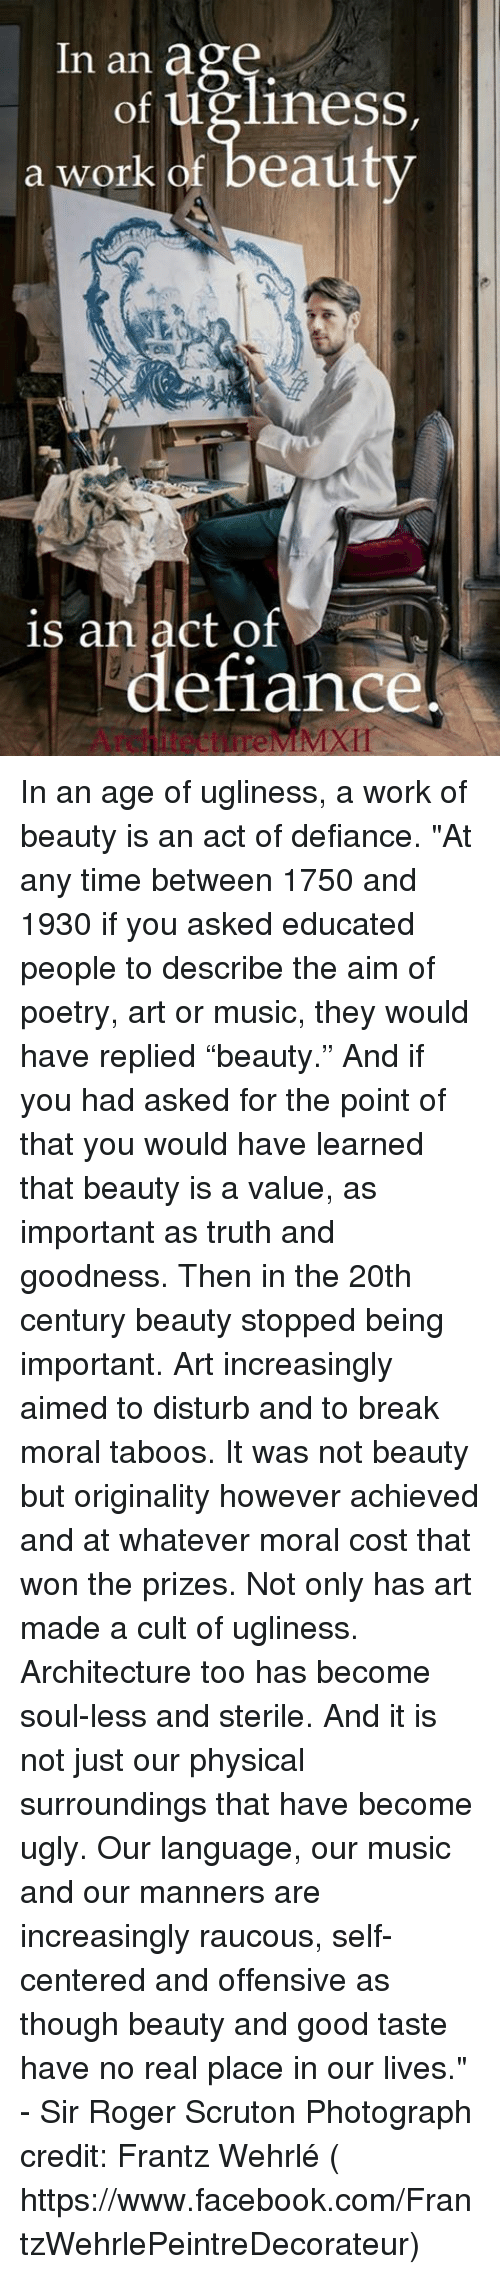 """Defiance: In an age  of ugliness,  a work of beauty  is an act of  defiance In an age of ugliness, a work of beauty is an act of defiance.  """"At any time between 1750 and 1930 if you asked educated people to describe the aim of poetry, art or music, they would have replied """"beauty."""" And if you had asked for the point of that you would have learned that beauty is a value, as important as truth and goodness.   Then in the 20th century beauty stopped being important. Art increasingly aimed to disturb and to break moral taboos. It was not beauty but originality however achieved and at whatever moral cost that won the prizes.   Not only has art made a cult of ugliness. Architecture too has become soul-less and sterile. And it is not just our physical surroundings that have become ugly.  Our language, our music and our manners are increasingly raucous, self-centered and offensive as though beauty and good taste have no real place in our lives.""""  - Sir Roger Scruton  Photograph credit: Frantz Wehrlé ( https://www.facebook.com/FrantzWehrlePeintreDecorateur)"""